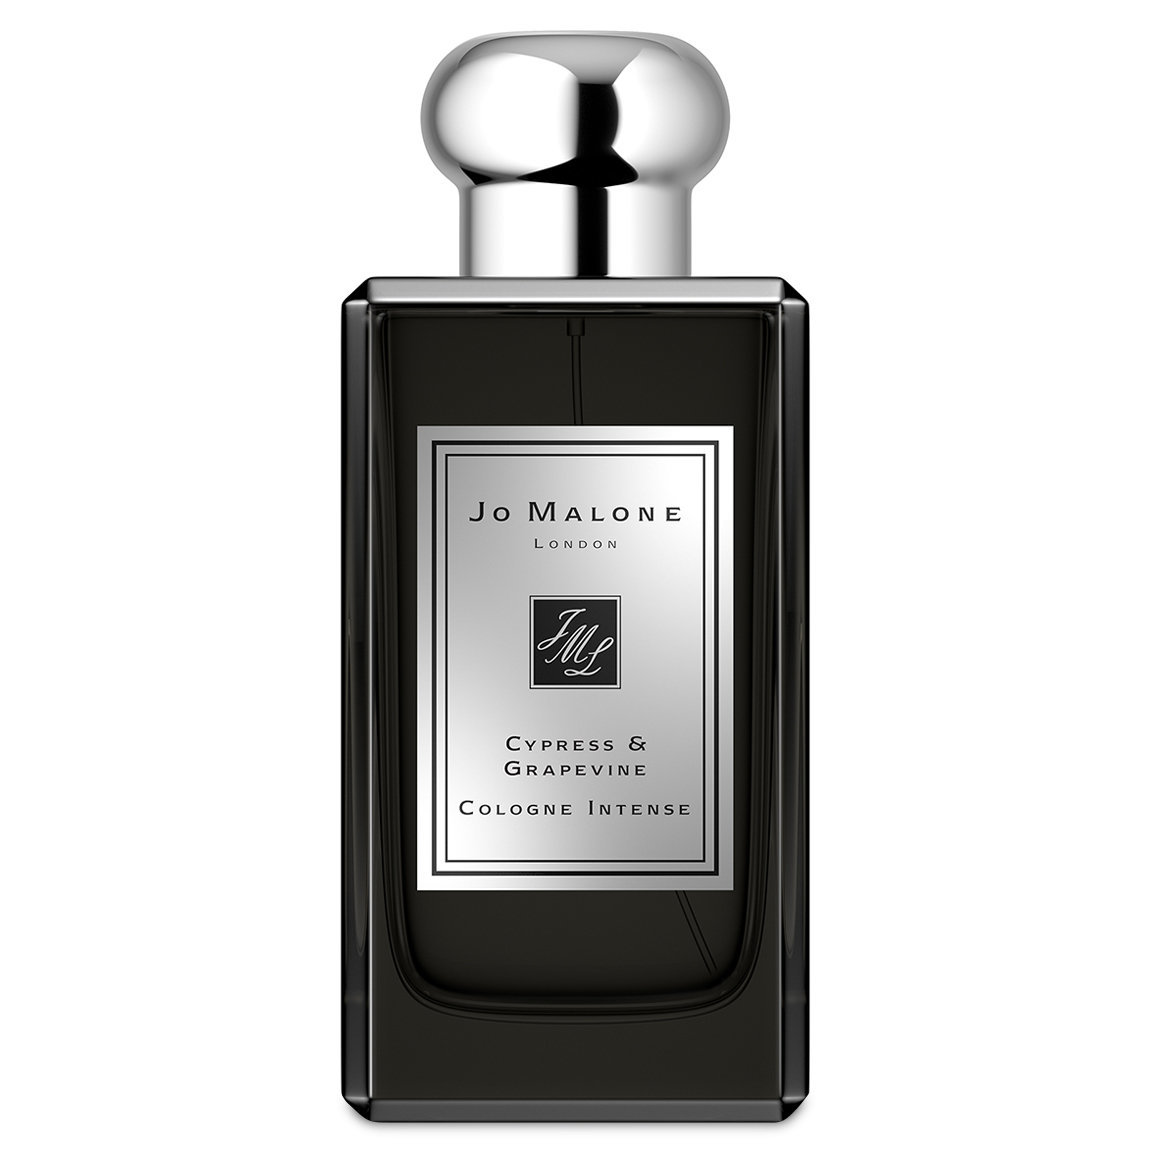 Jo Malone London Cypress & Grapevine Cologne Intense 100 ml alternative view 1 - product swatch.